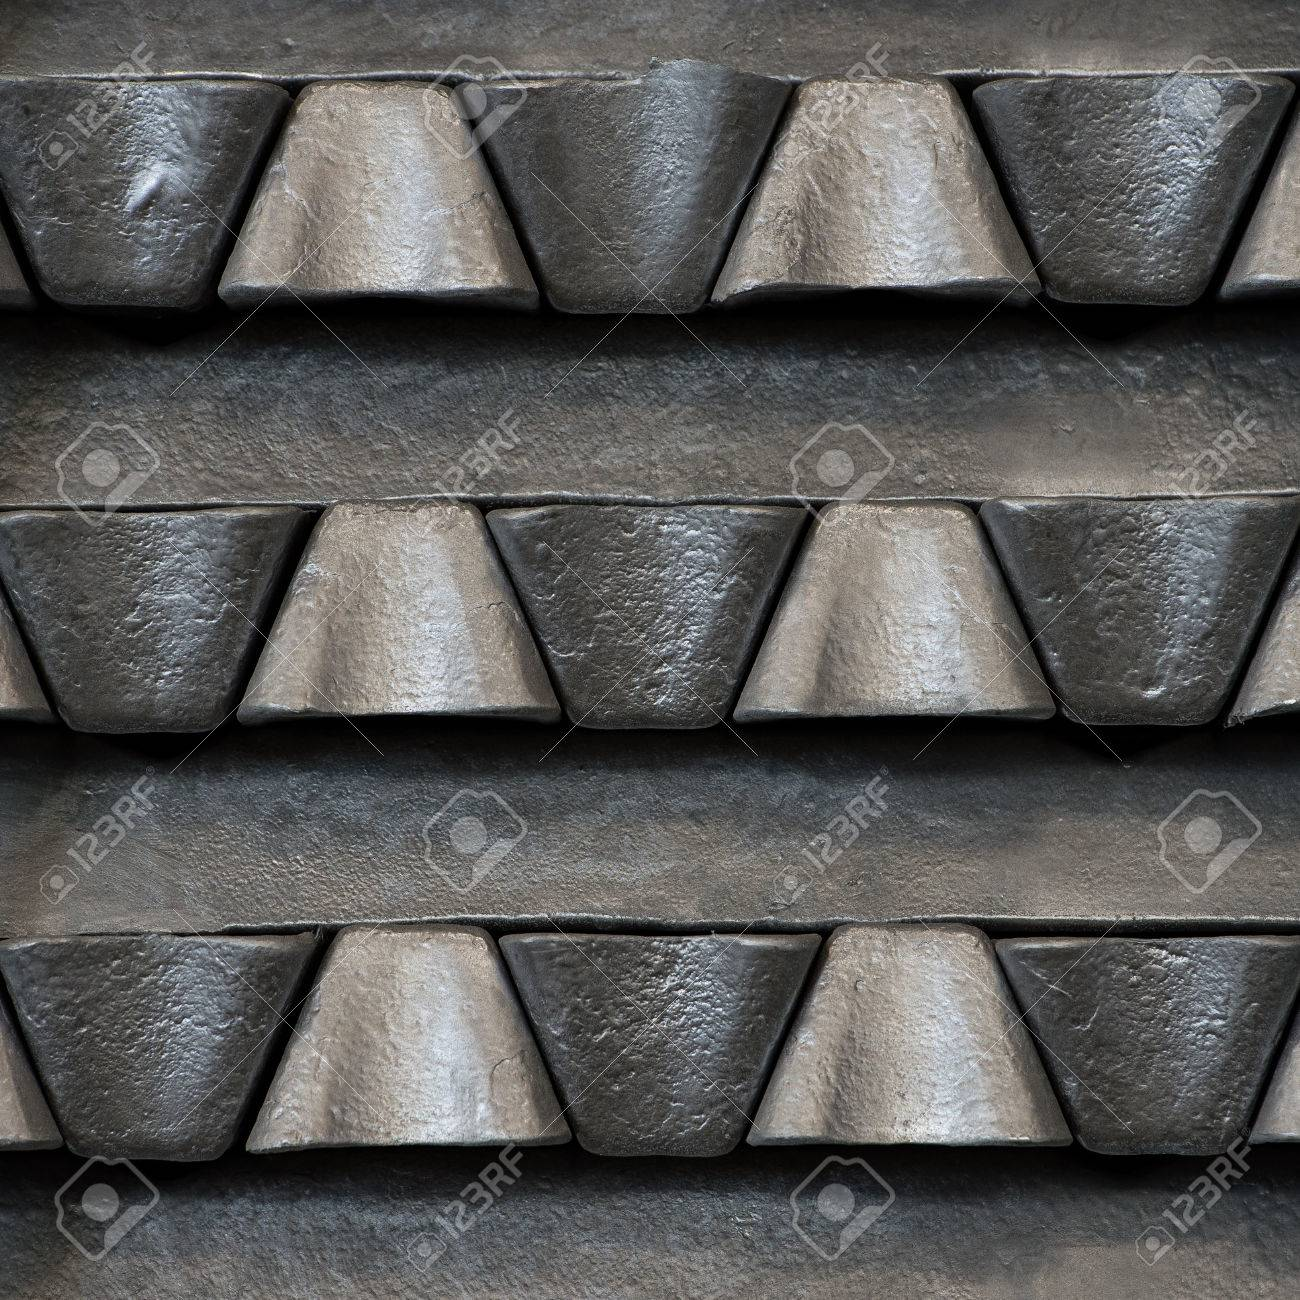 Stack of raw aluminum ingots in aluminum profiles factory, France Stock Photo - 71963278